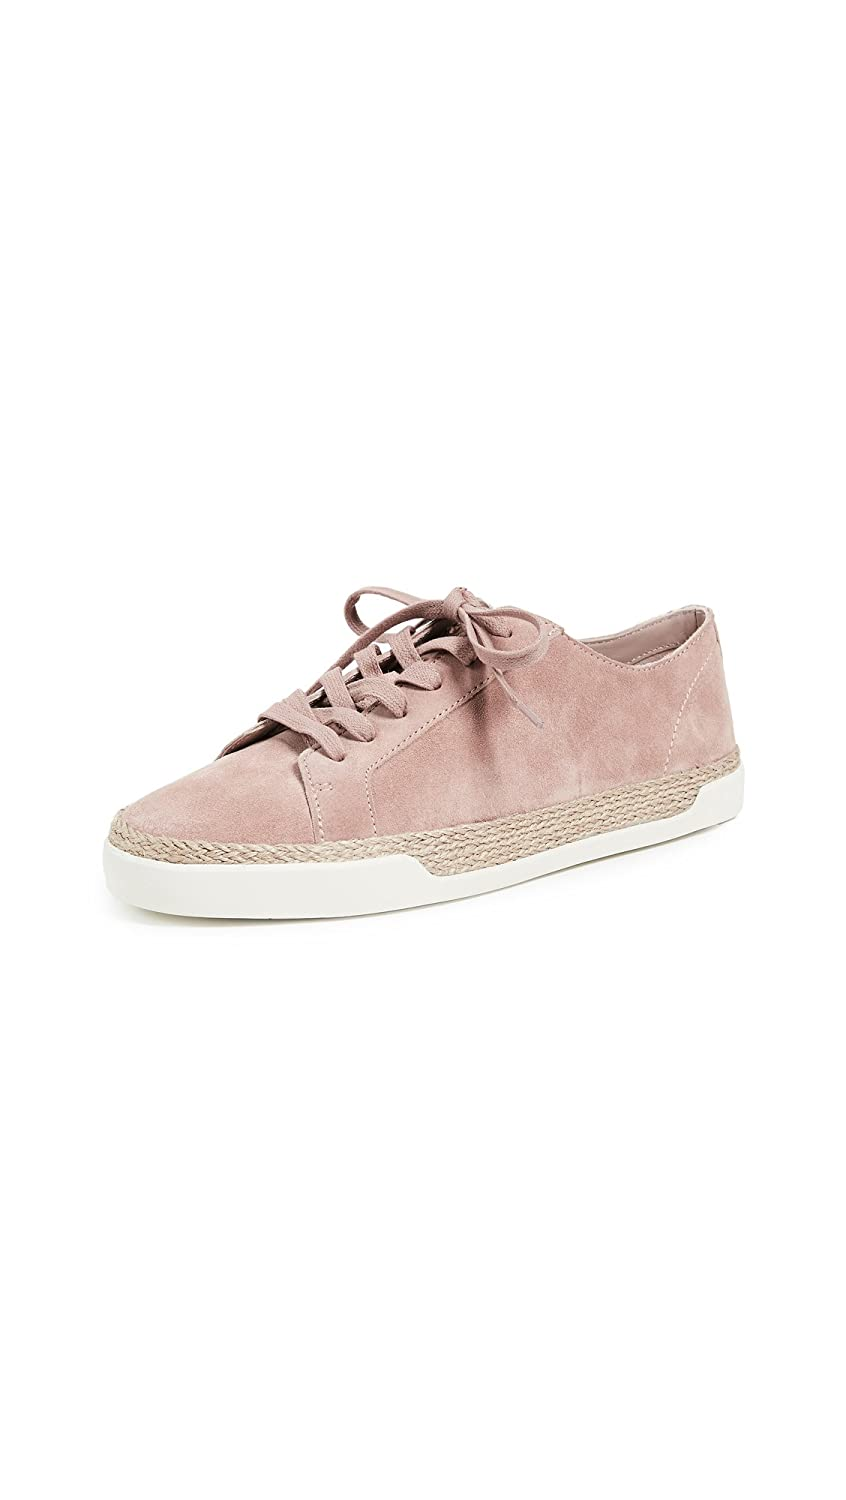 Vince Women's Jadon Sneakers B075FX7NPG 8 B(M) US|Blush